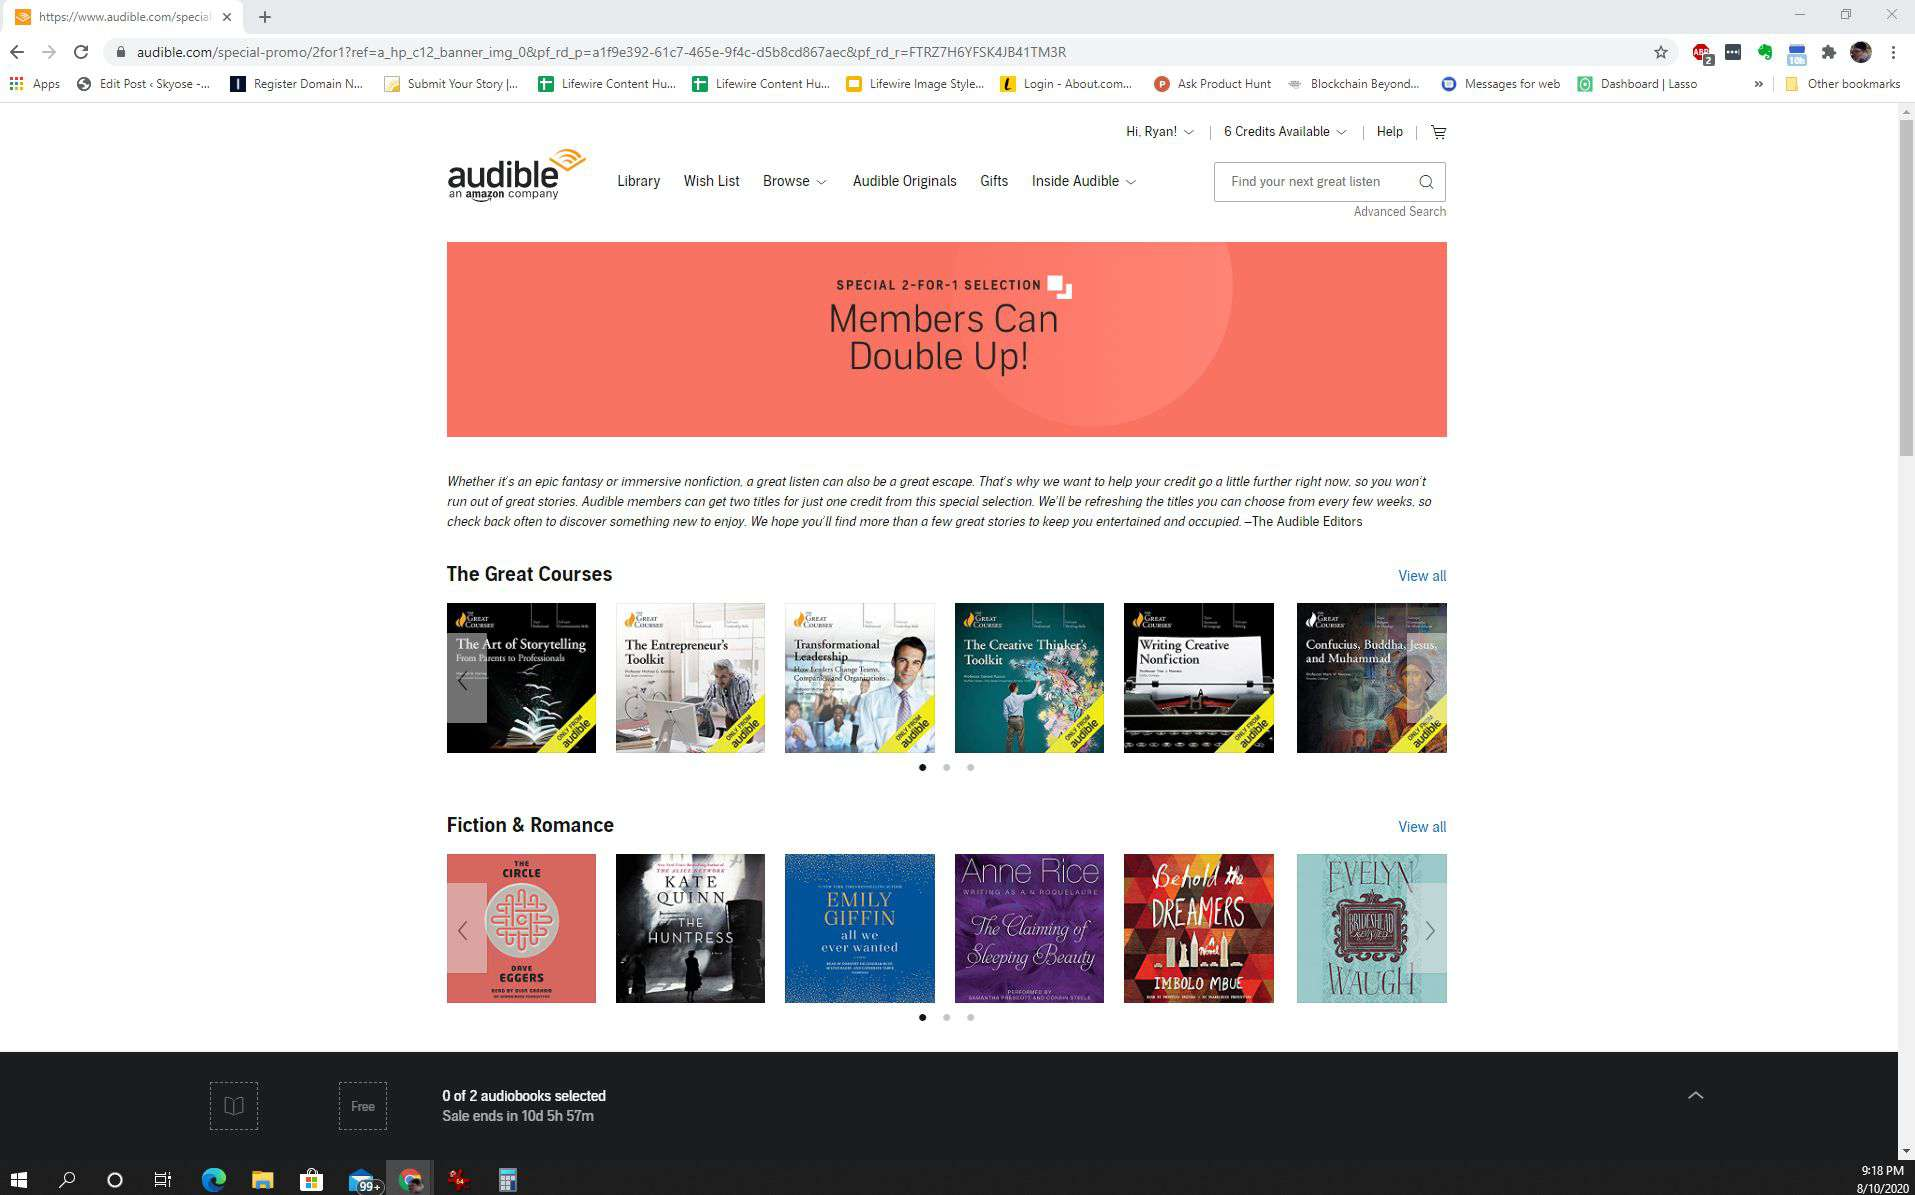 Screenshot of Audible 2-for-1 selection